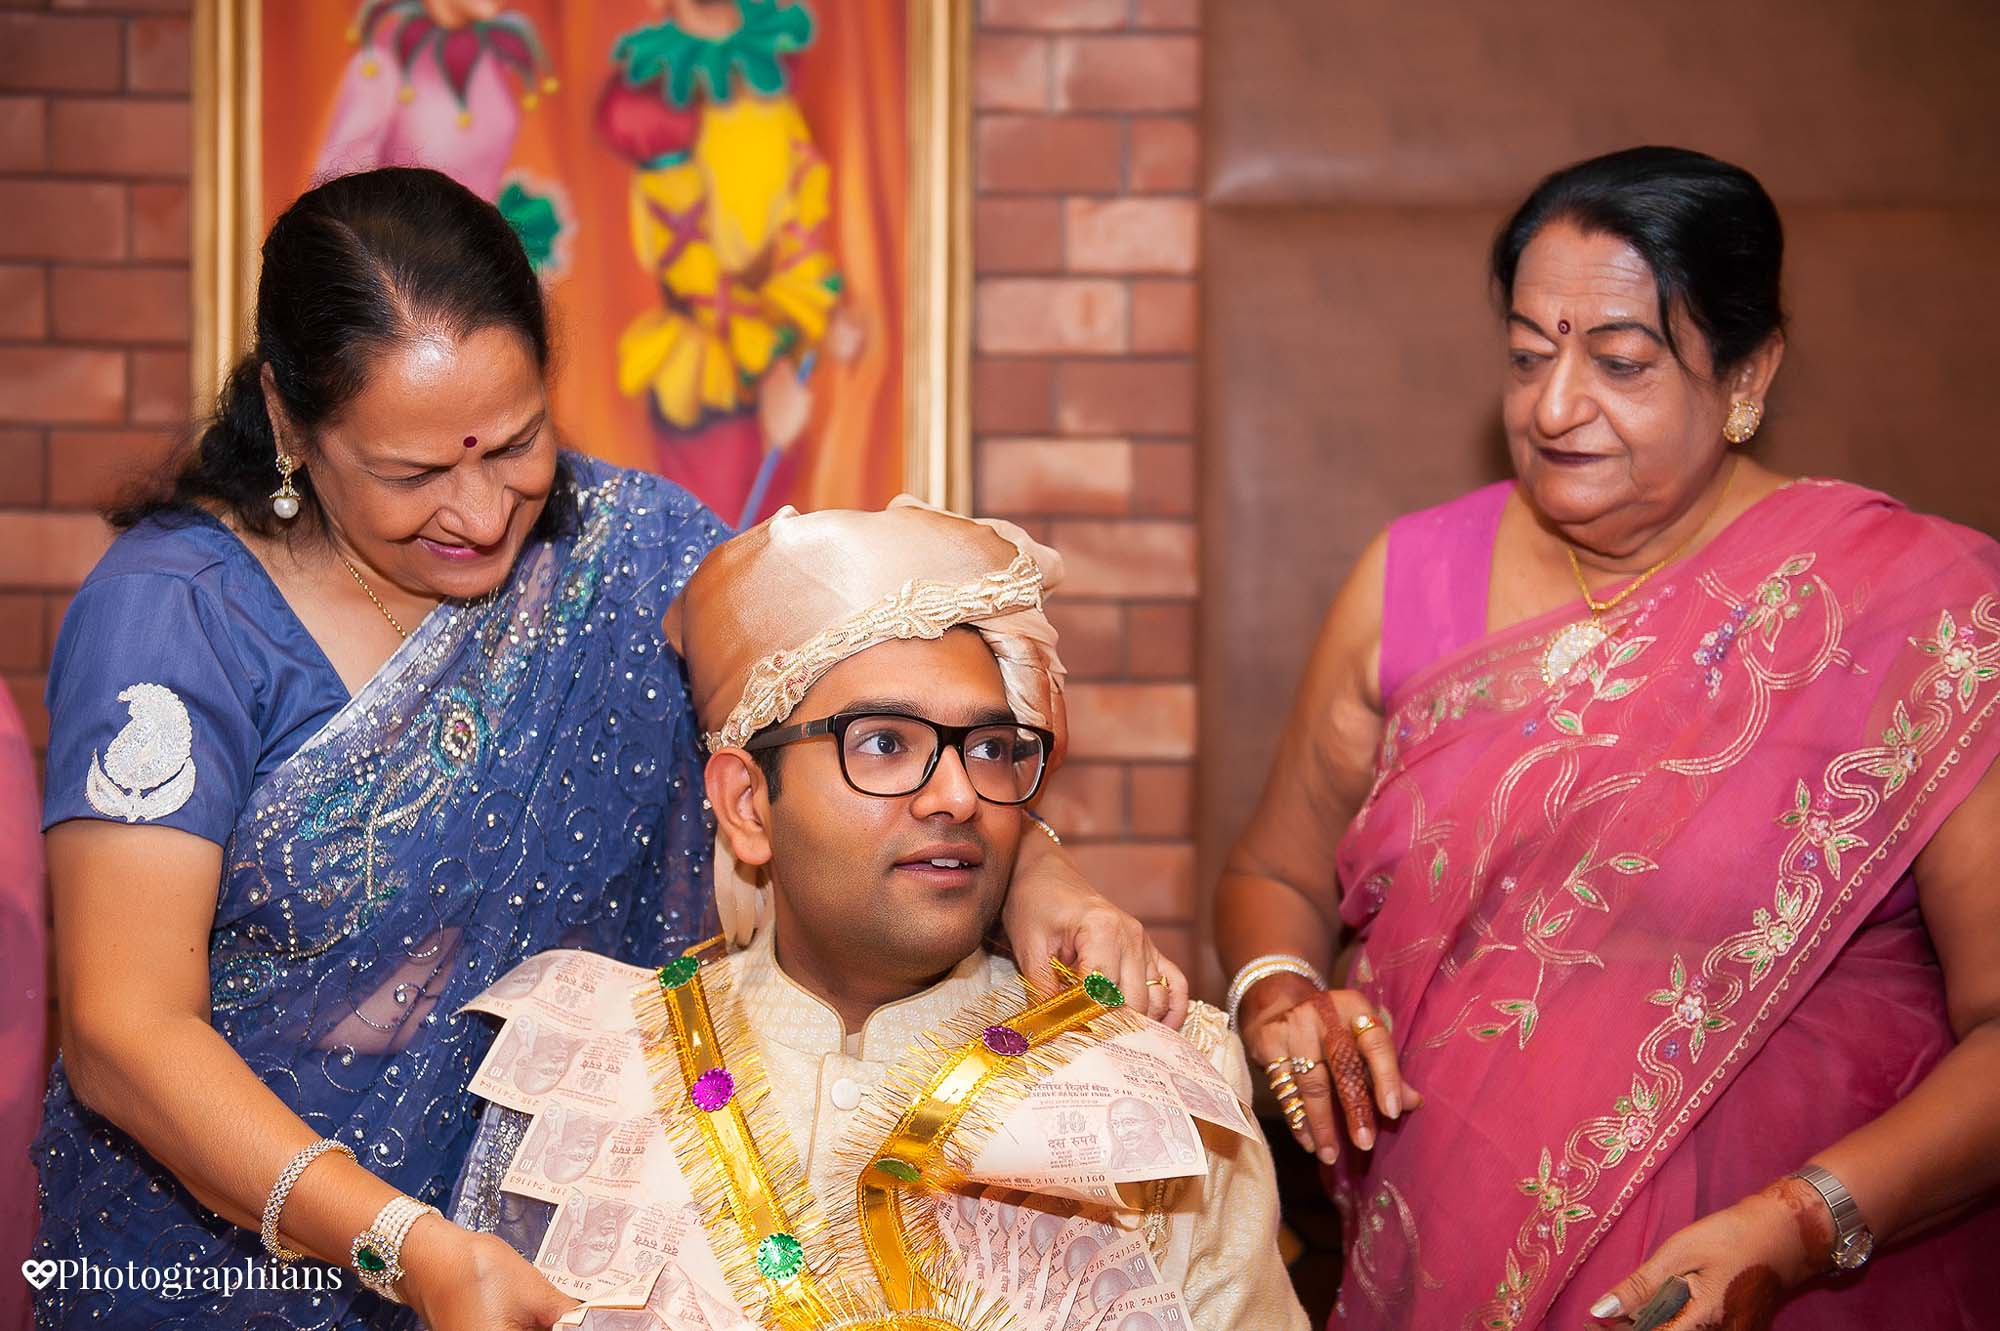 Punjabi_Marwari_Wedding_Kolkata_Photographians_-VIDHI-168